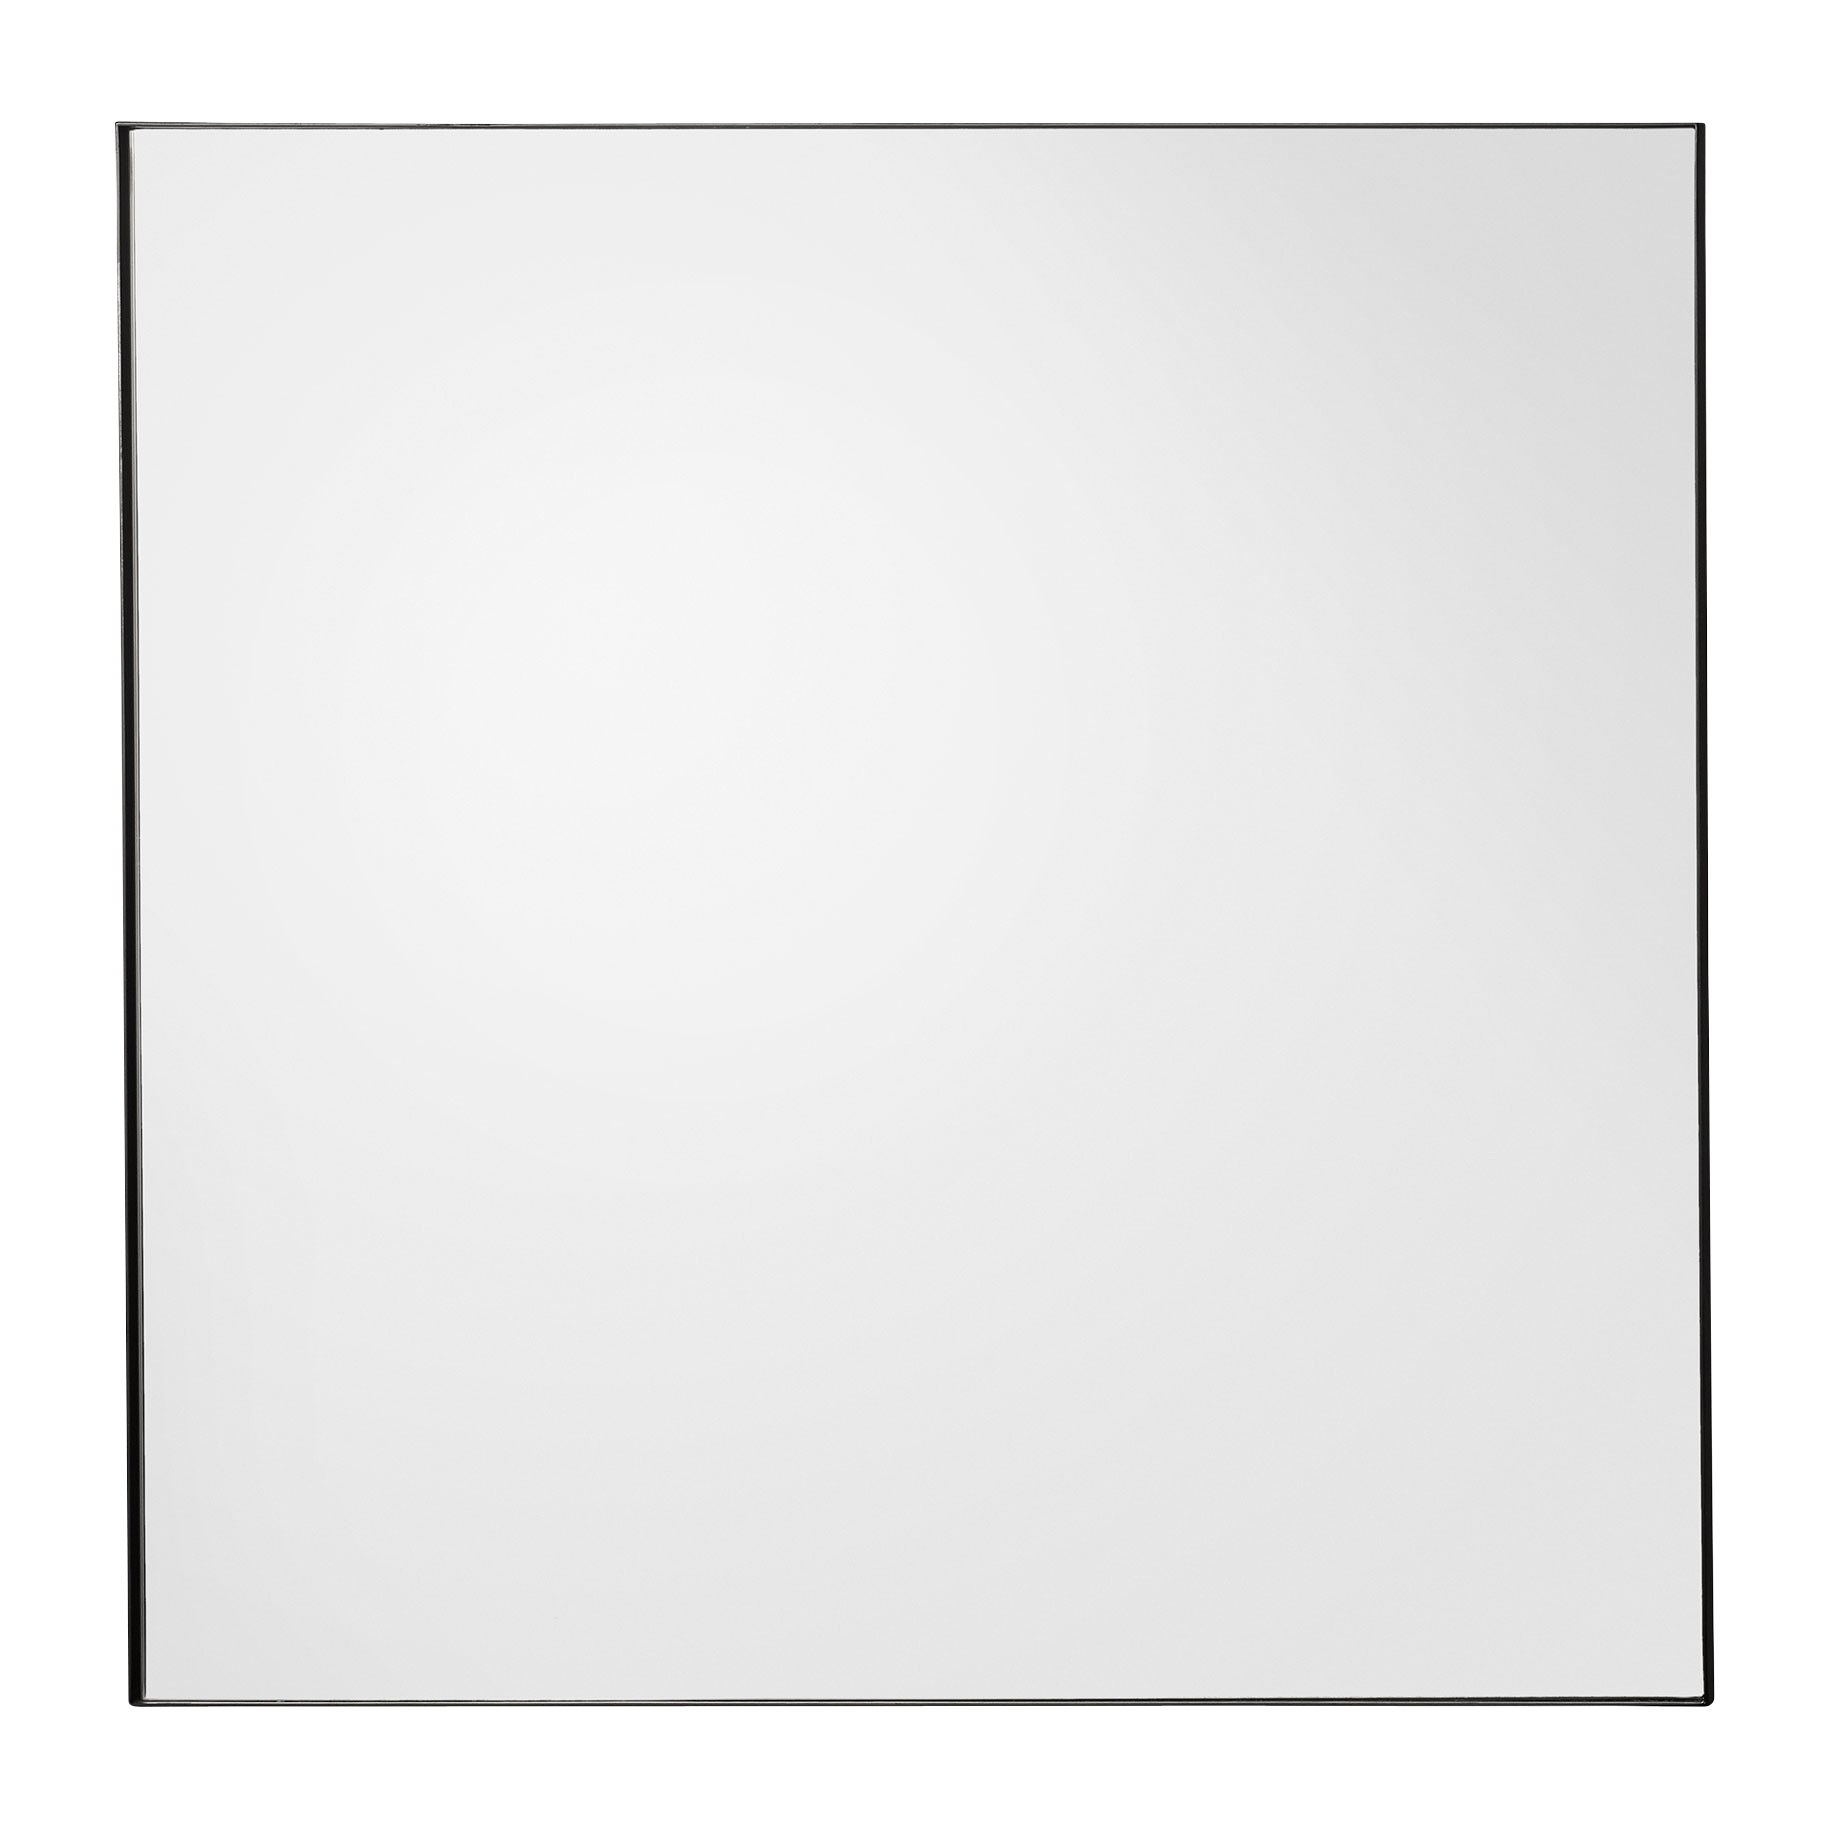 Quadro wall mirror 90 x 90 cm smoked grey by aytm for Miroir 50 x 90